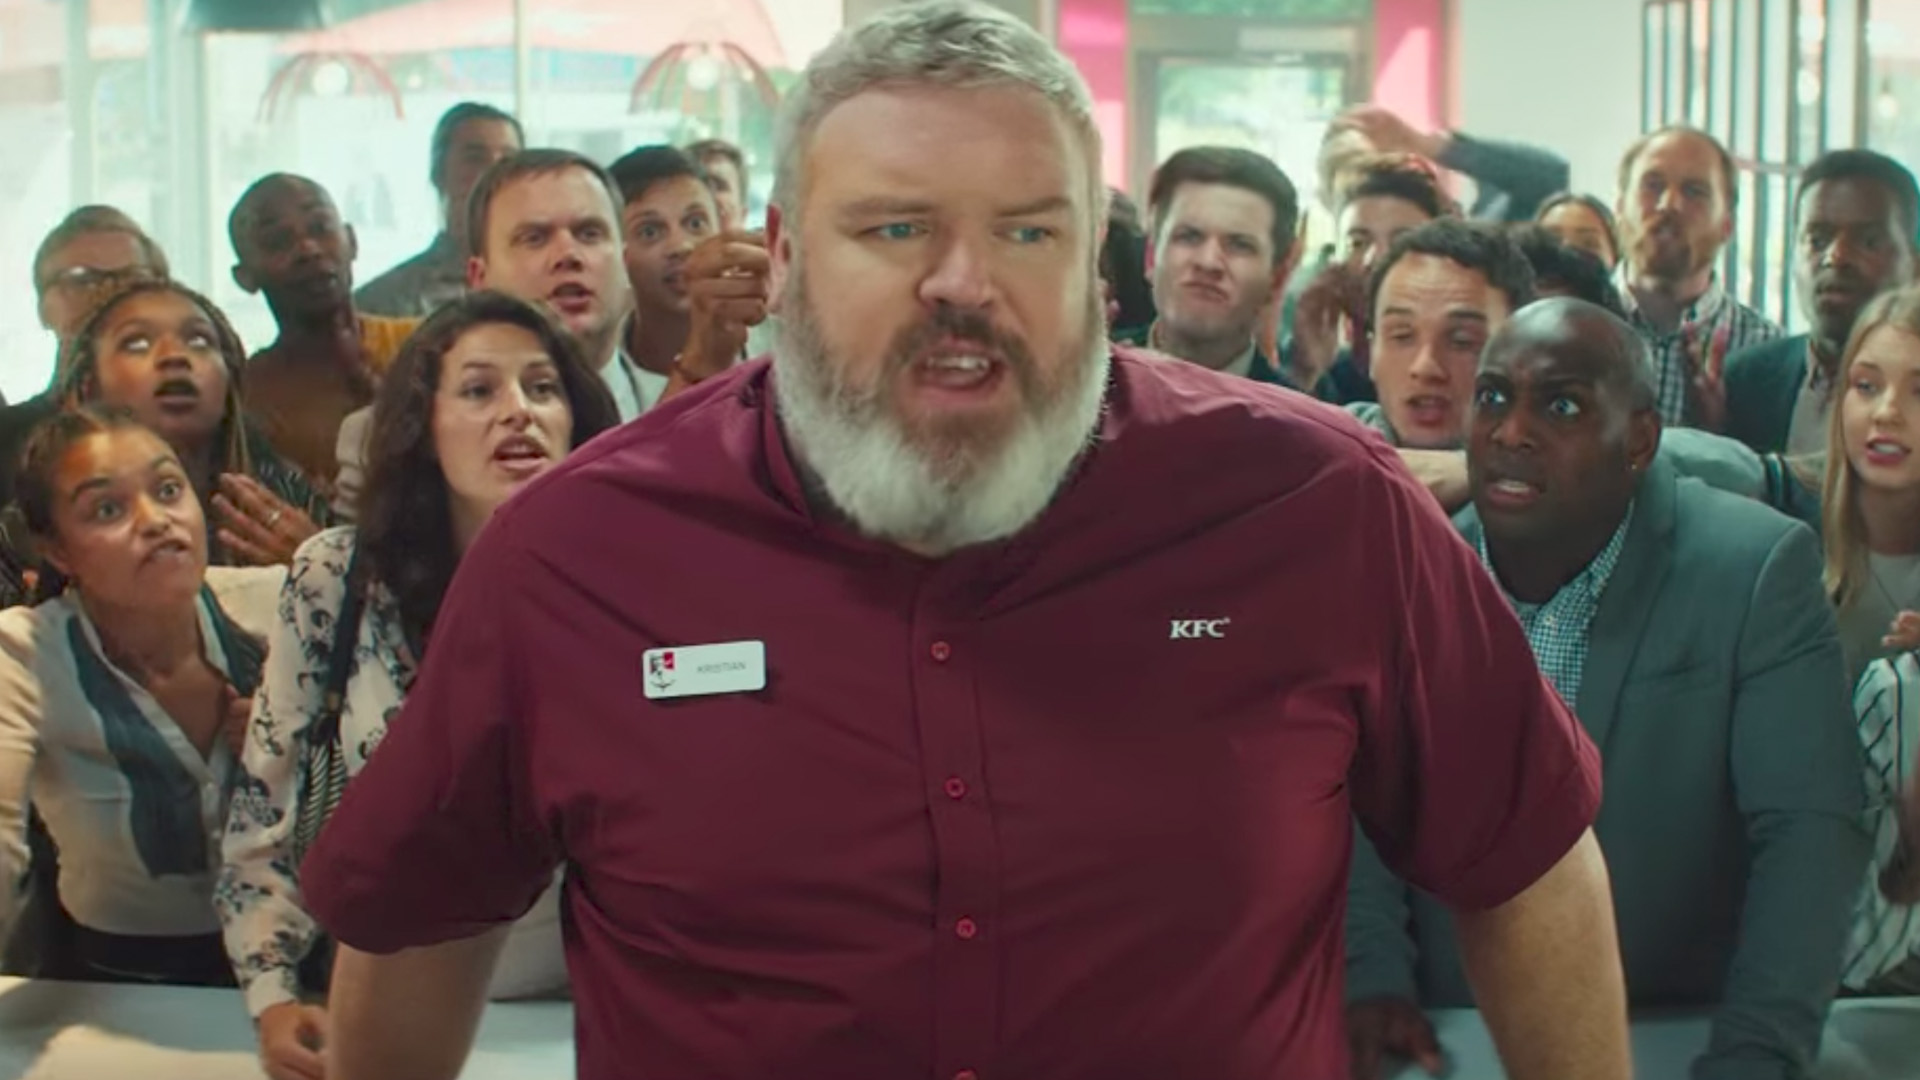 kfc enlists actor kristian nairn hodor for a game of thrones